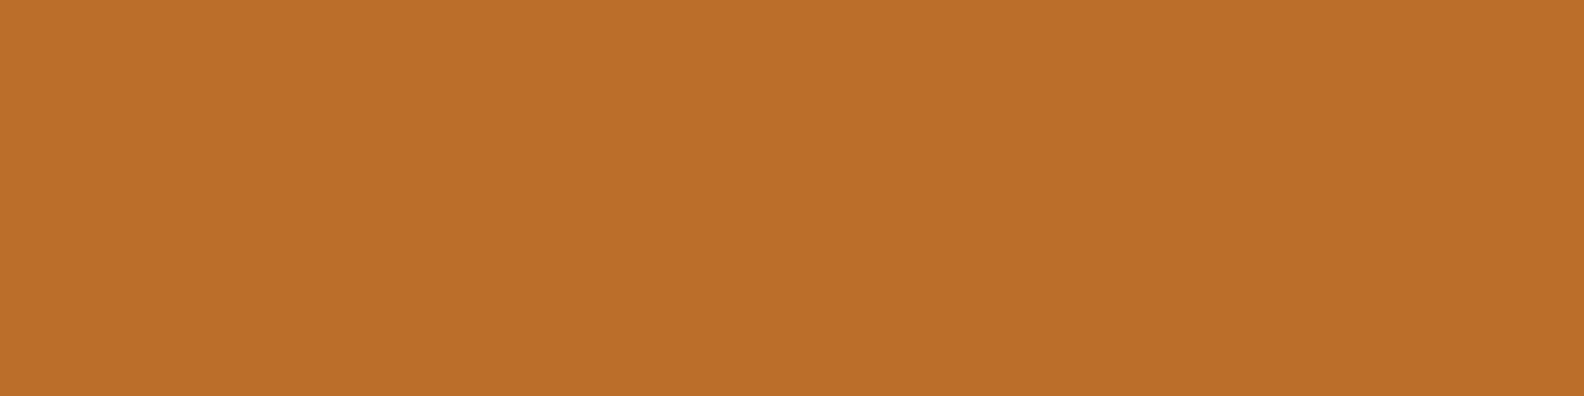 1584x396 Liver Dogs Solid Color Background